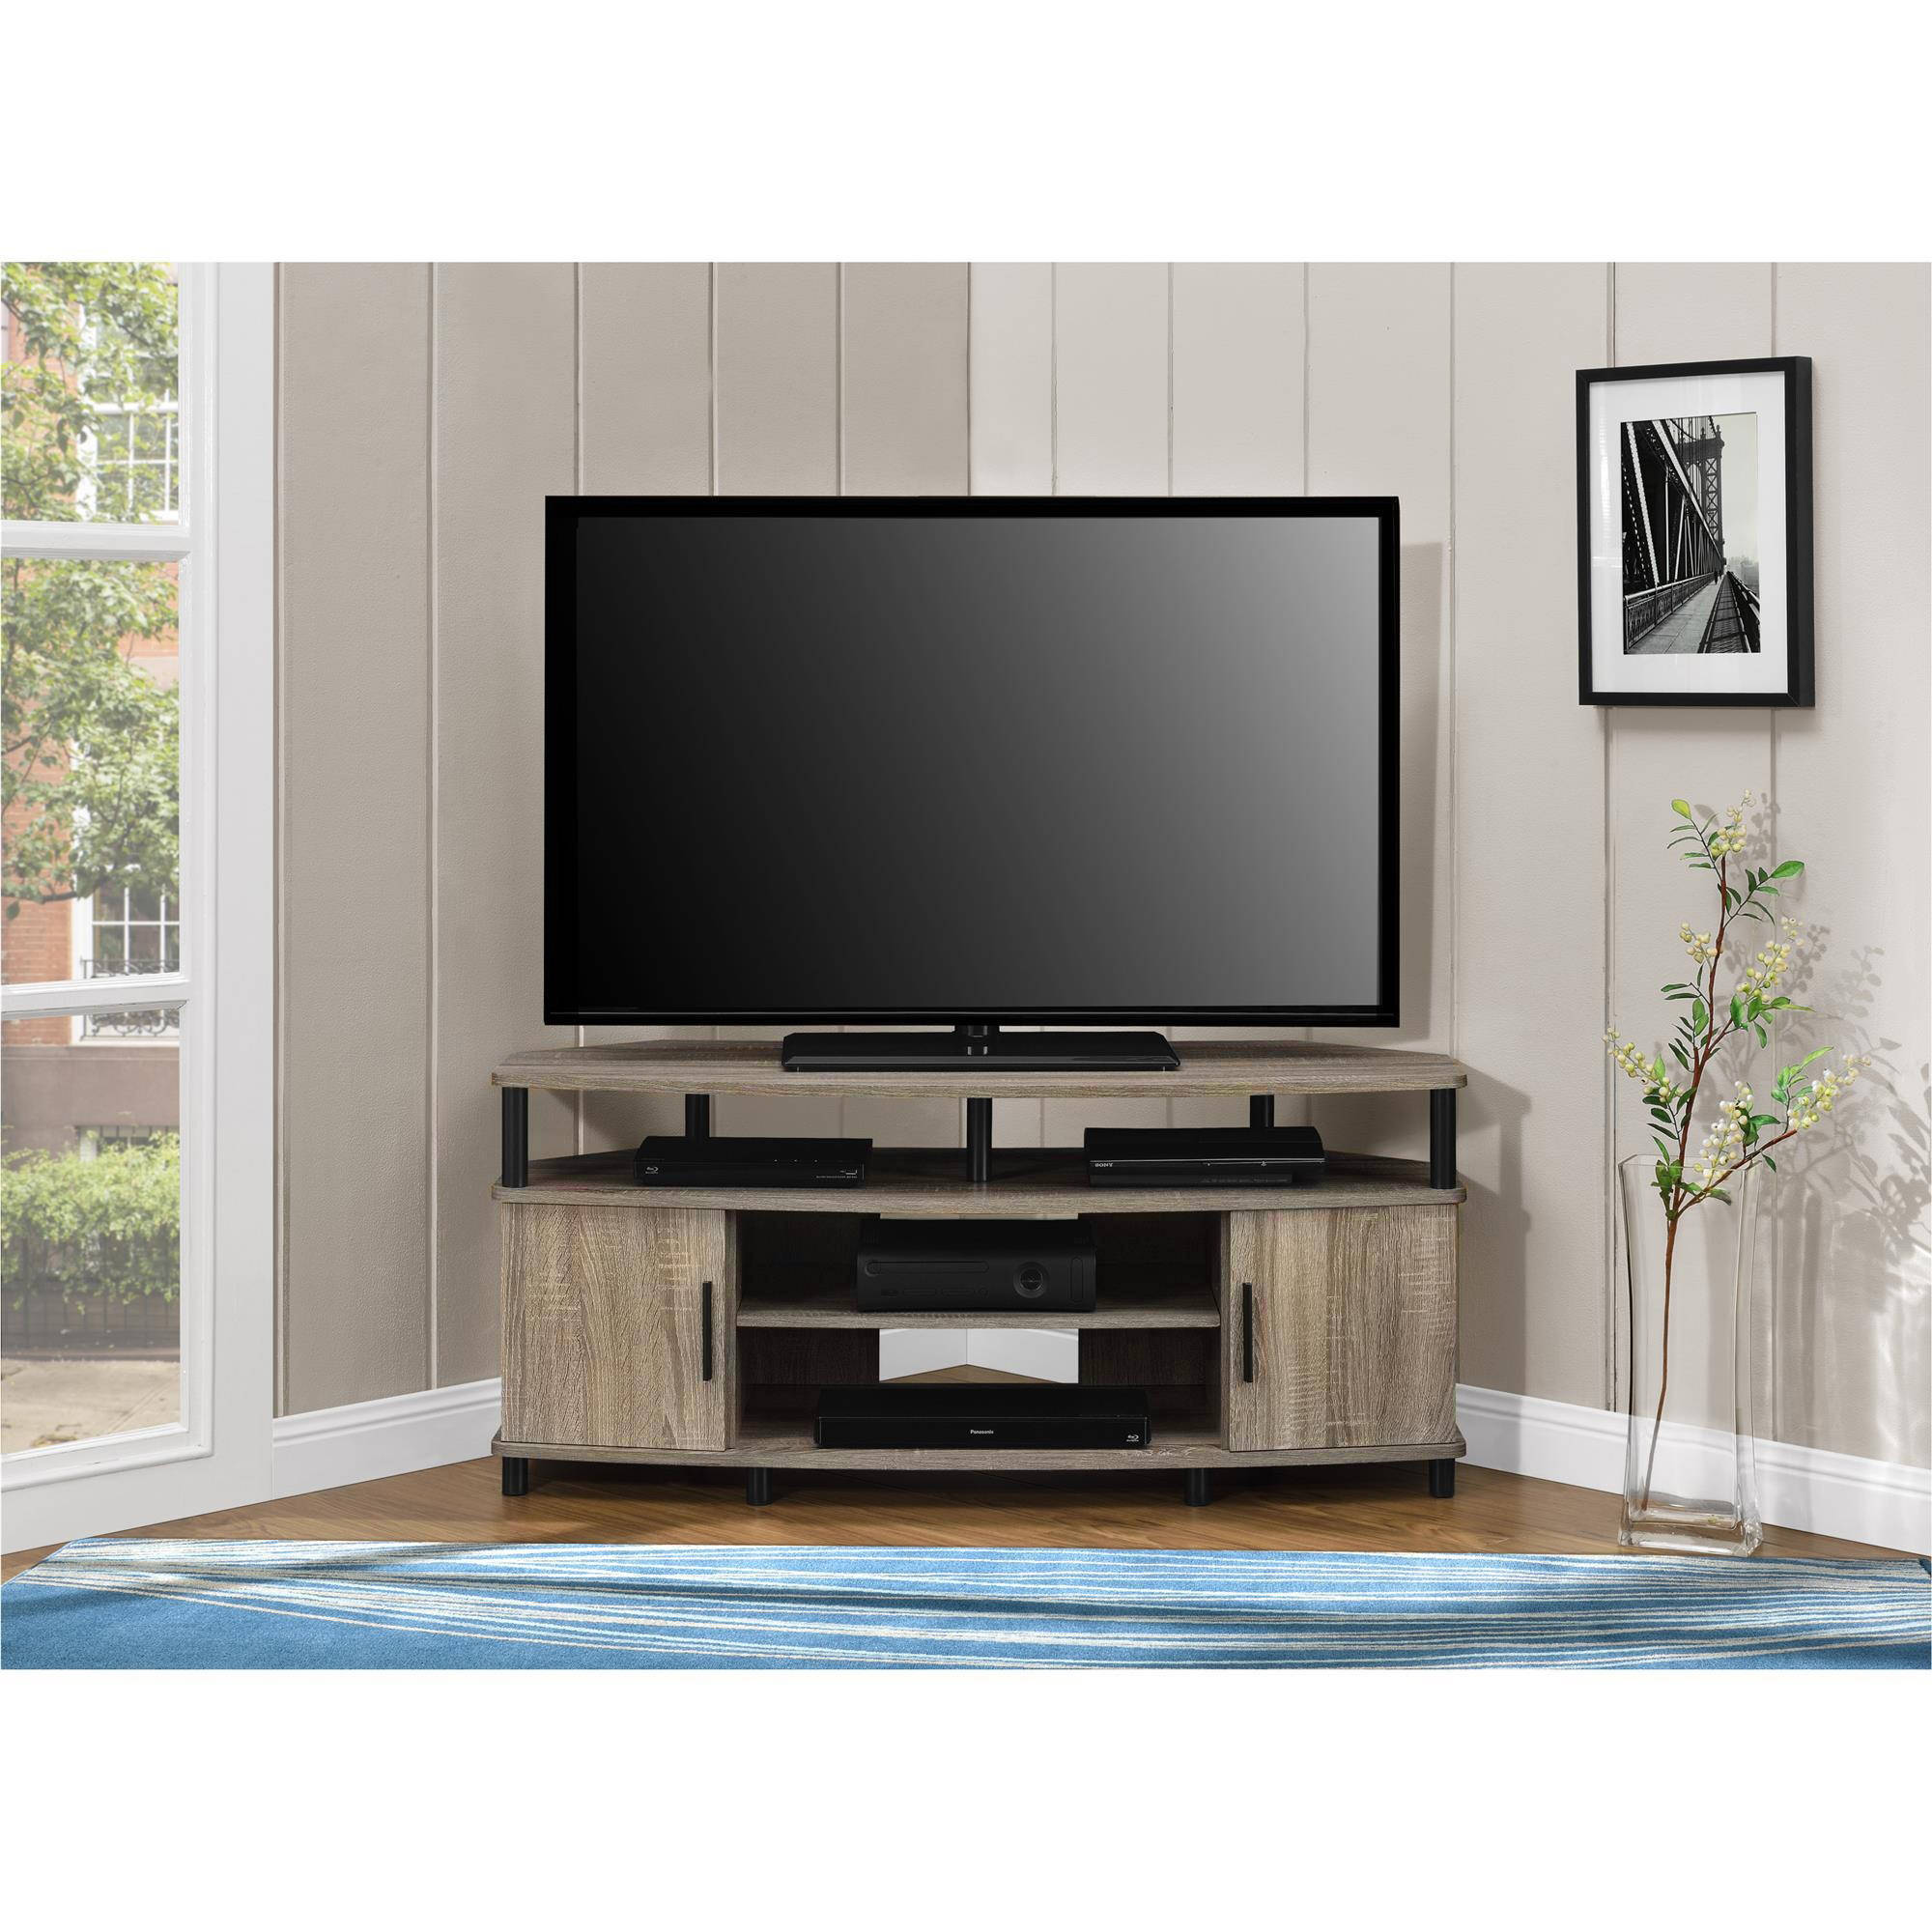 corner tv stand media console for flat screens sonoma oak. Black Bedroom Furniture Sets. Home Design Ideas